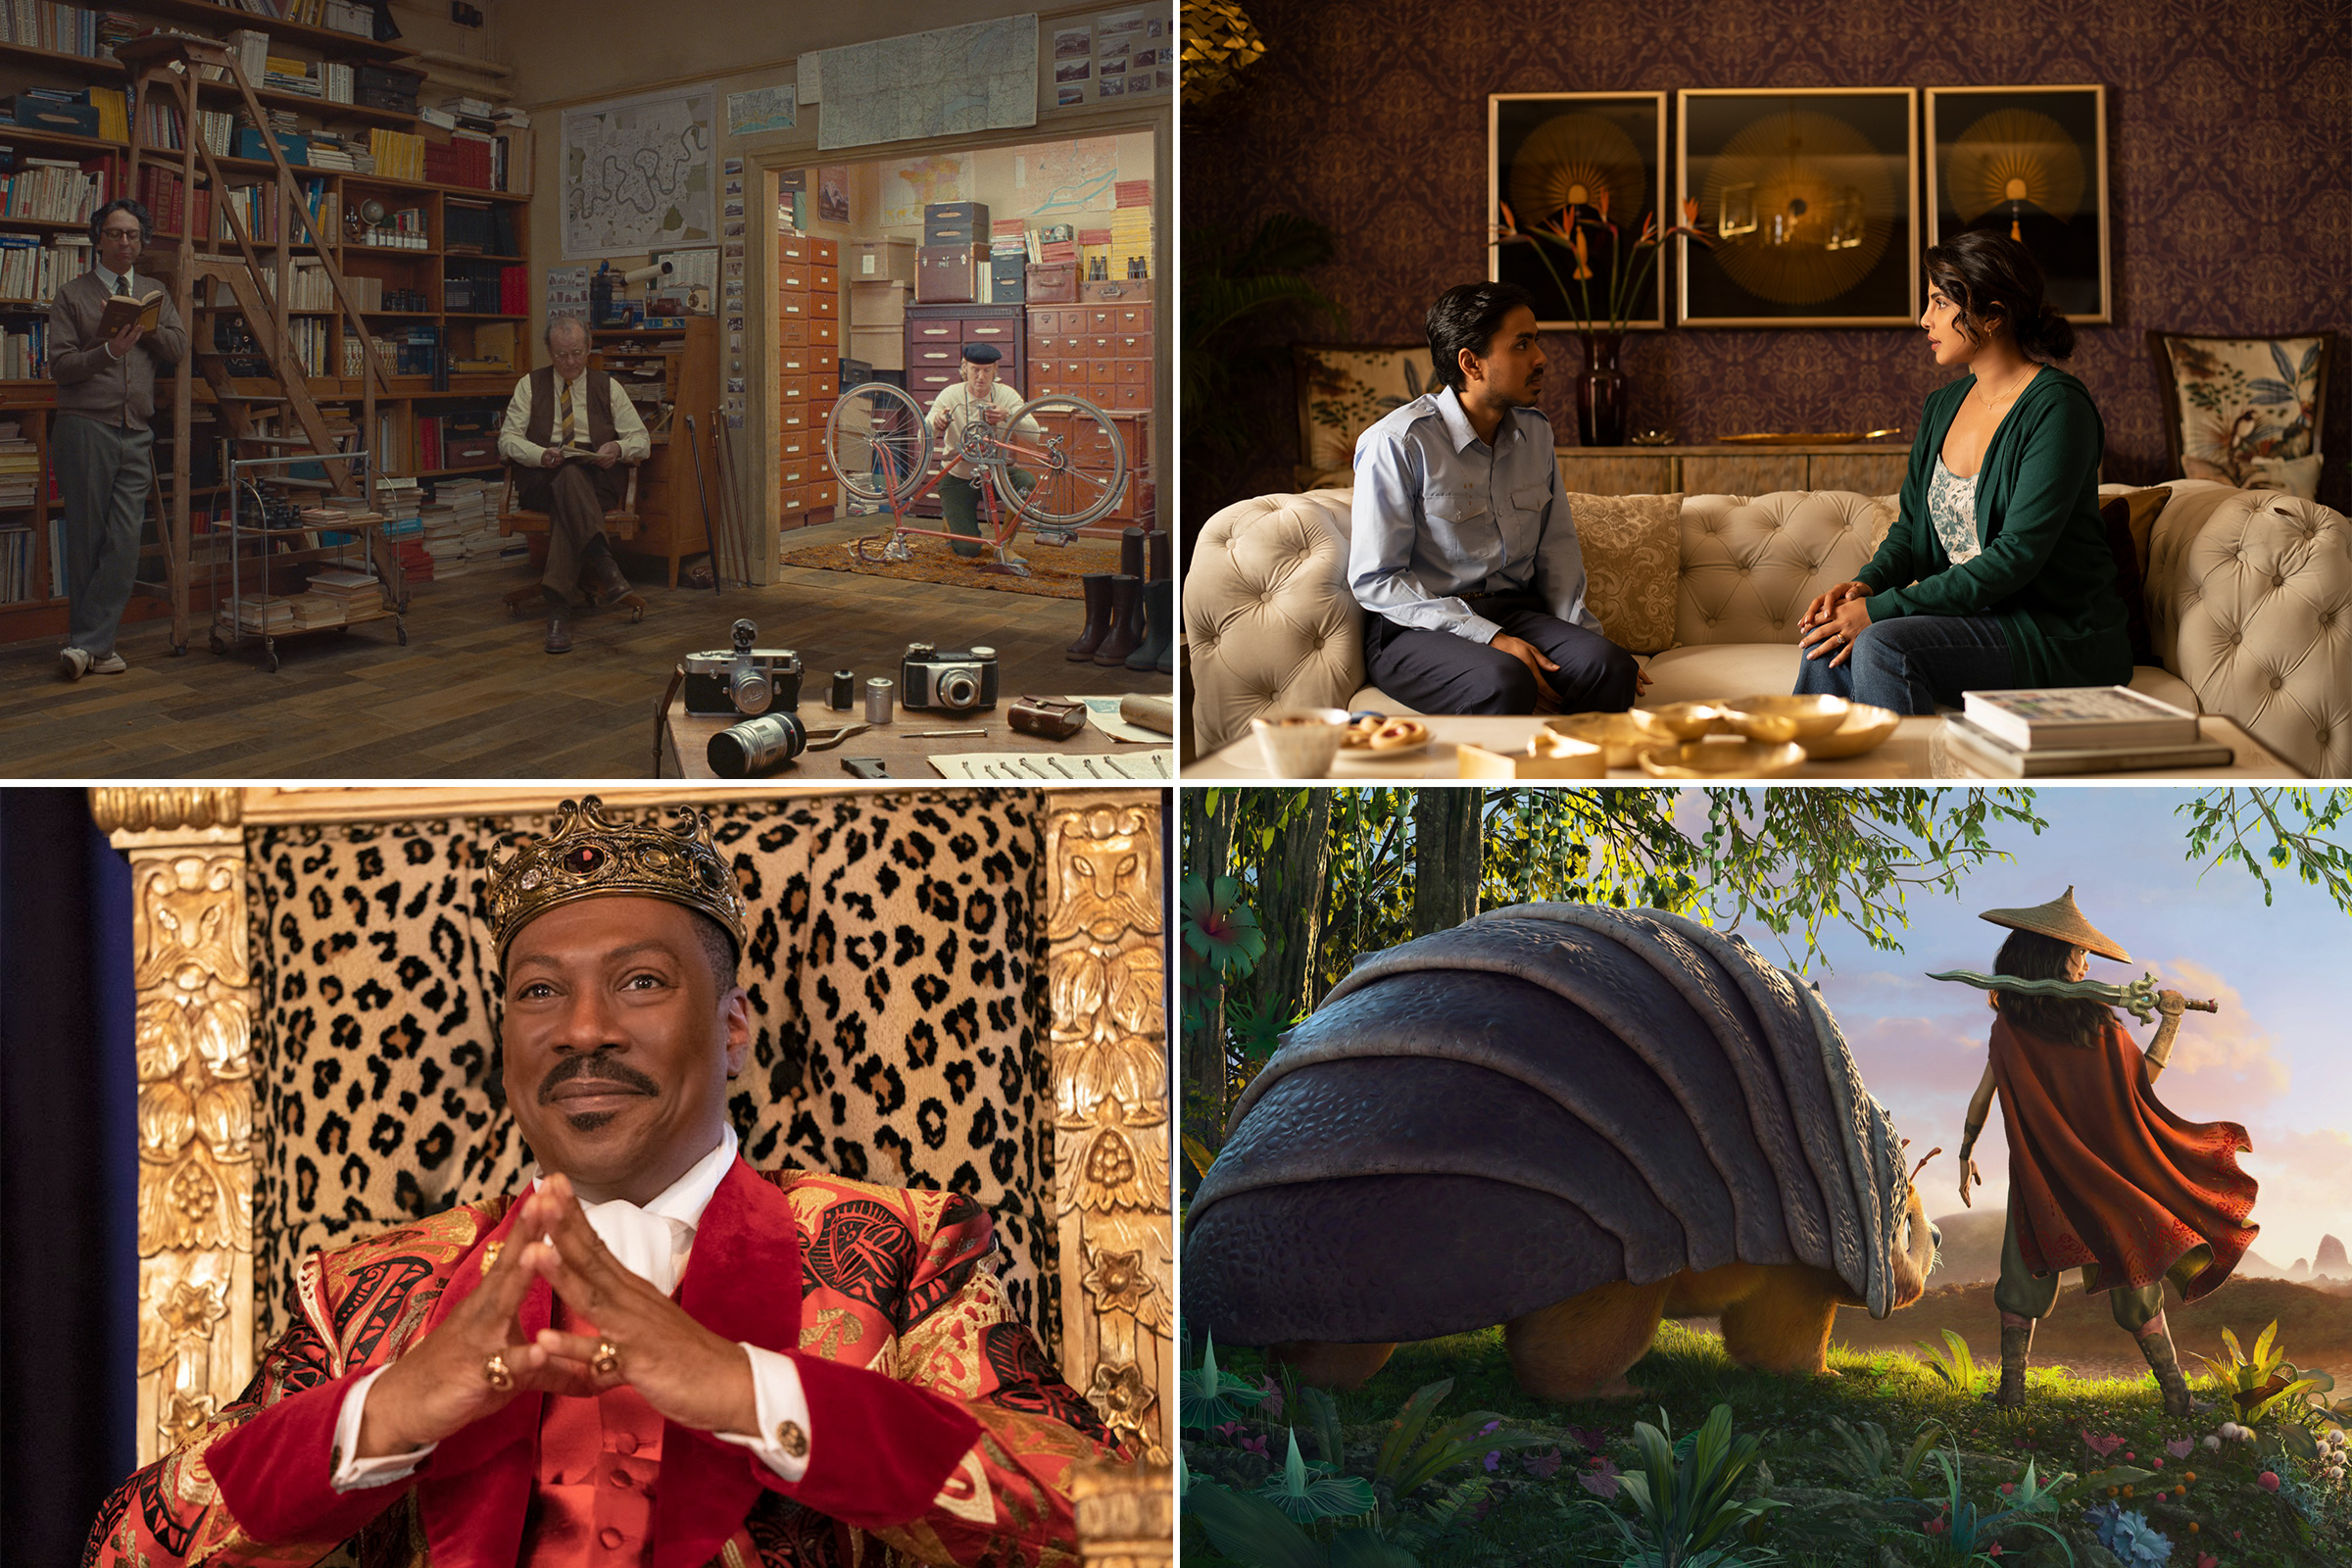 Clockwise from top left: Wally Wolodarsky, Bill Murray and Owen Wilson in The French Dispatch; ​Adarsh Gourav and Priyanka Chopra in White Tiger; Raya and the Last Dragon; Eddie Murphy in Coming 2 America